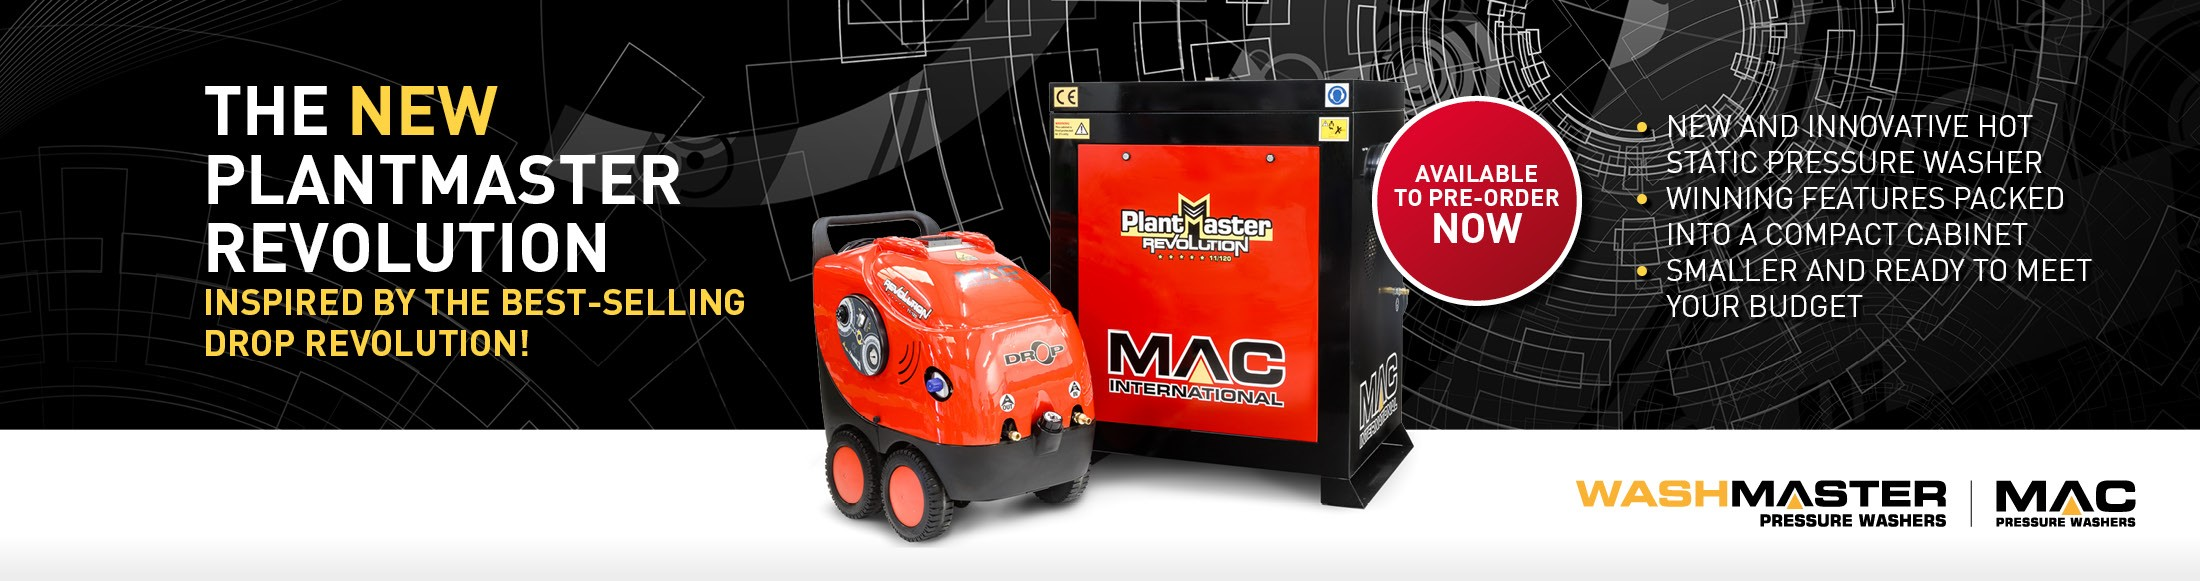 The New MAC Plantmaster Revolution Hot Static Pressure Washer